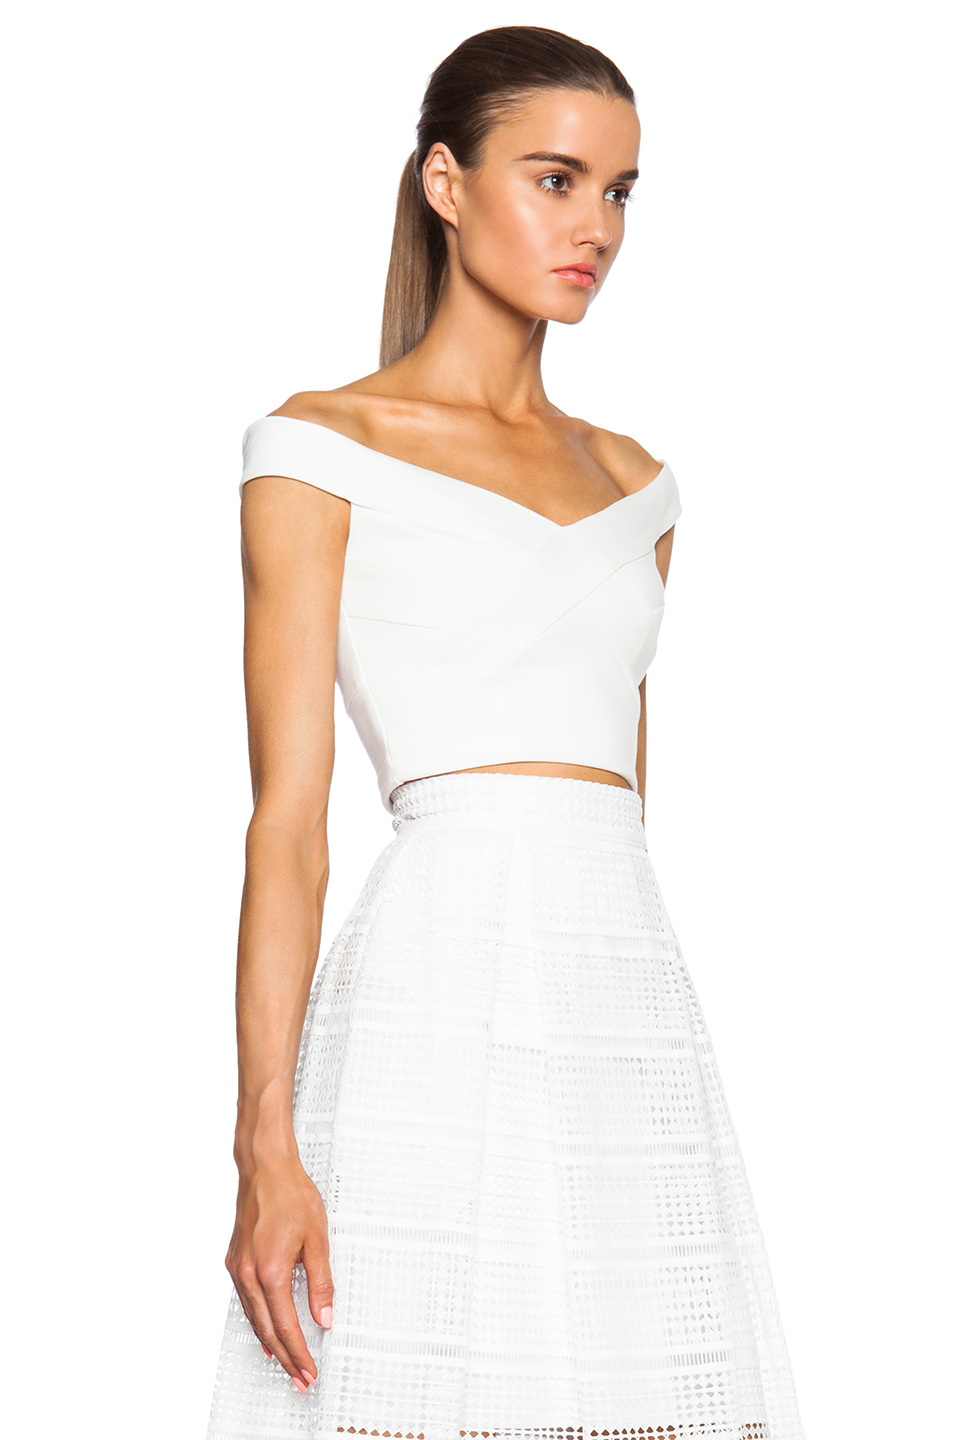 ddfe853a9e8 Nicholas Ponti Cross Front Off The Shoulder Top in White - Lyst